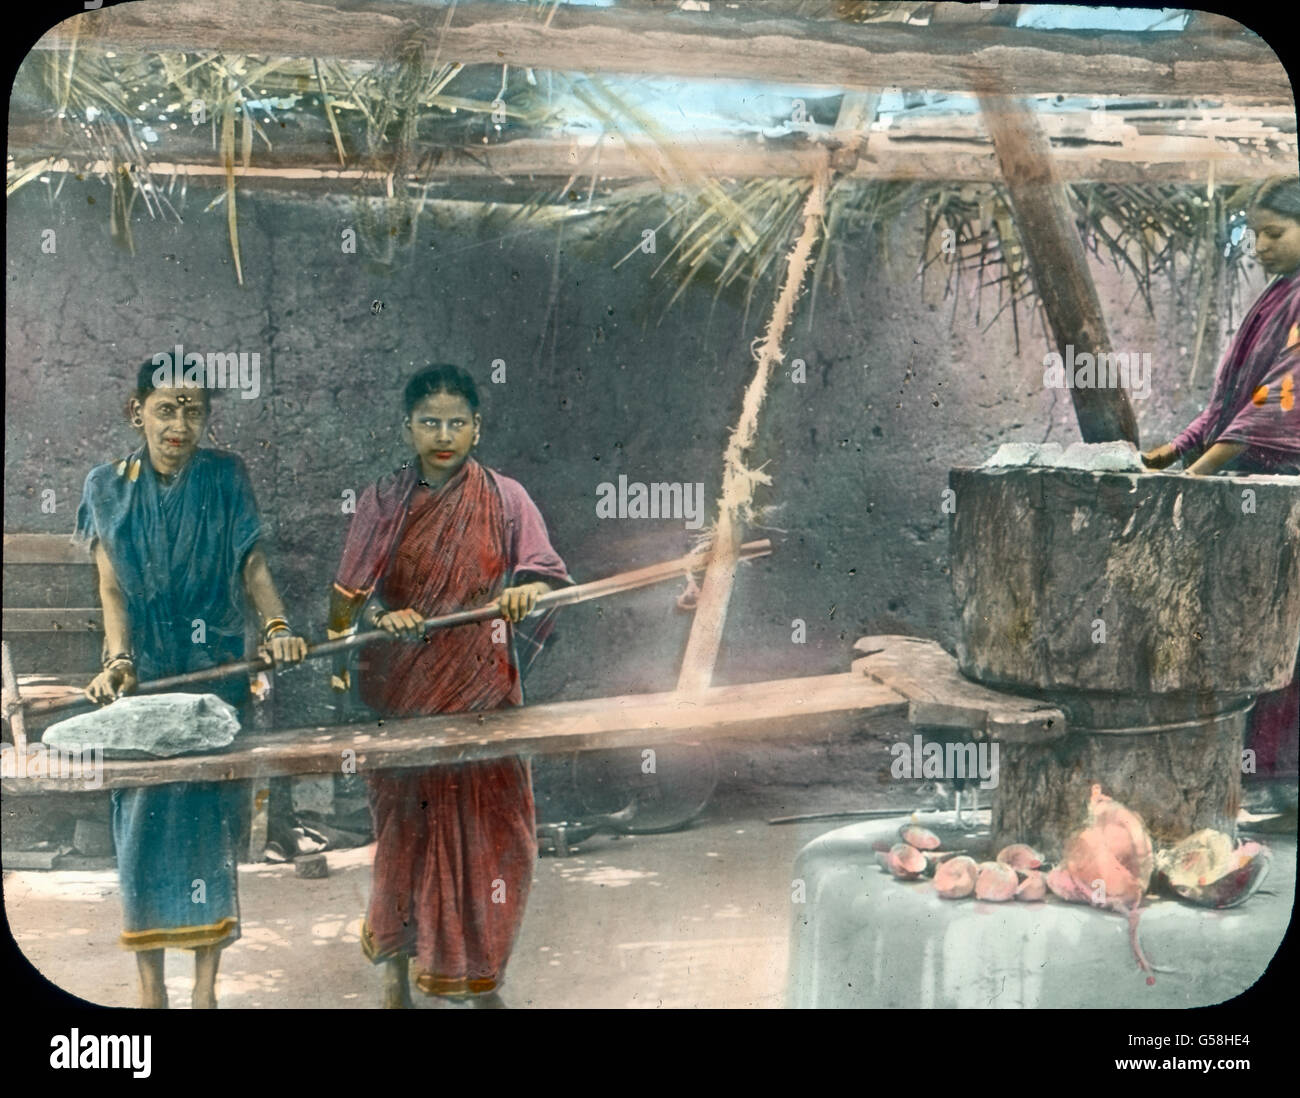 Hier werden Kokosnüsse von zwei Frauen zermahlen. India, Asia, travel, mill, Indian, women, rural, native, - Stock Image